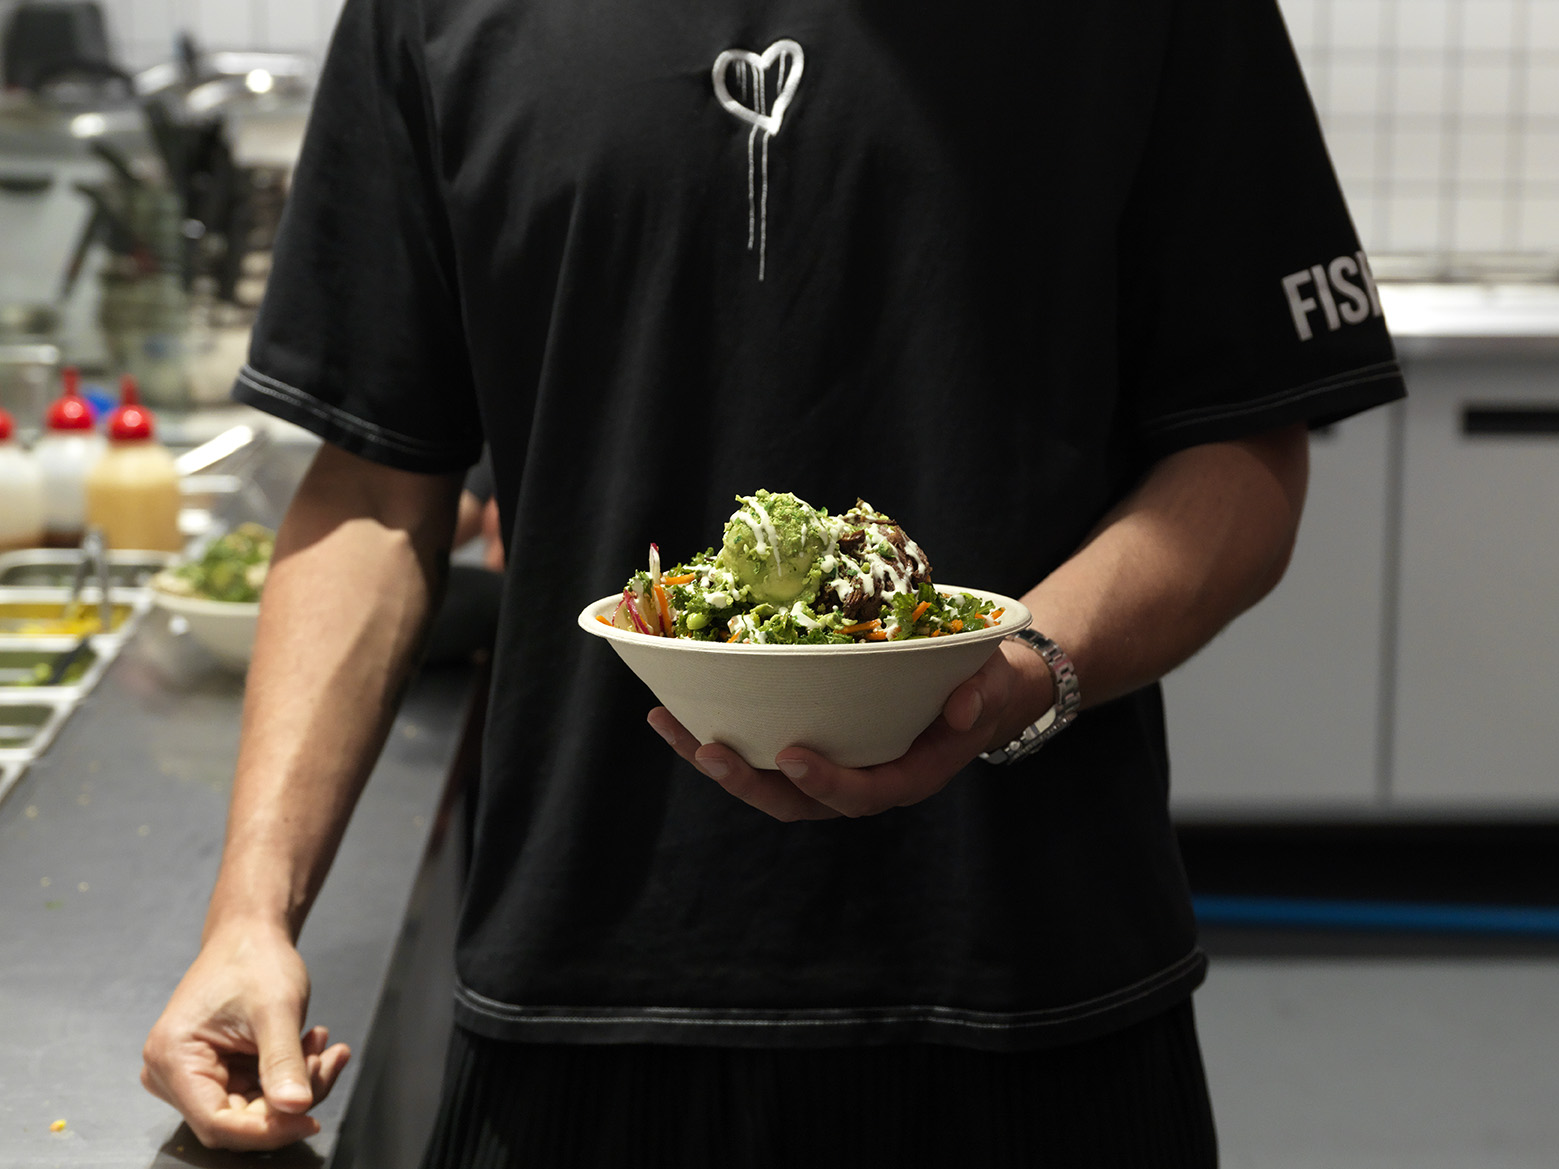 Fishbowl's brisket bowl - a nutritious and delicious option at the new Parramatta Square.